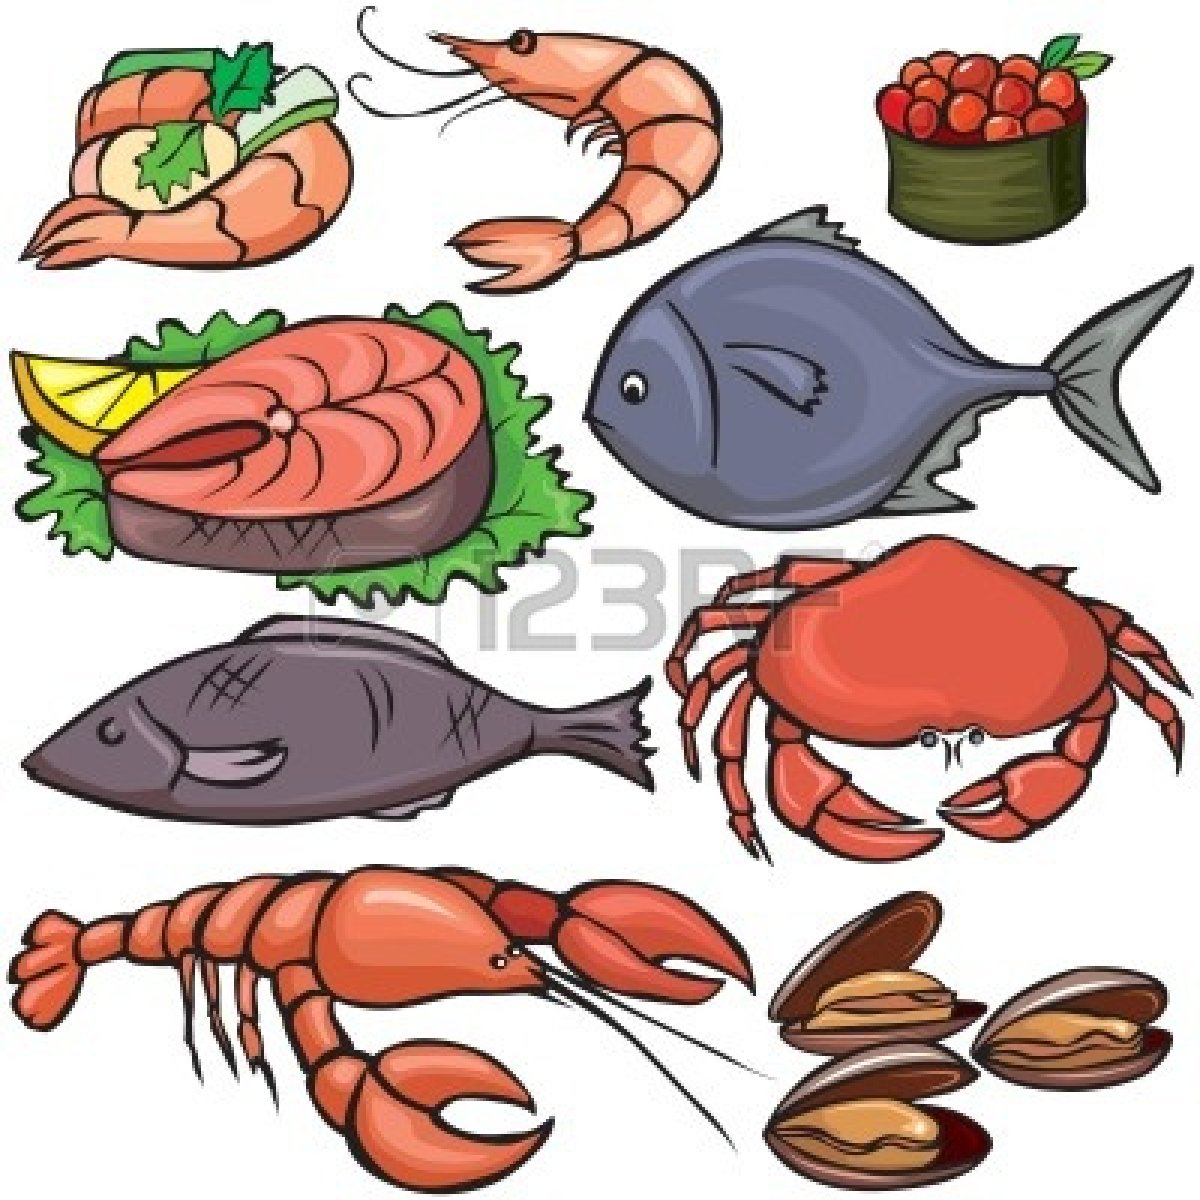 Seafood pictures clipart image royalty free Seafood Dinner Clip Art..   Clipart Panda - Free Clipart Images image royalty free